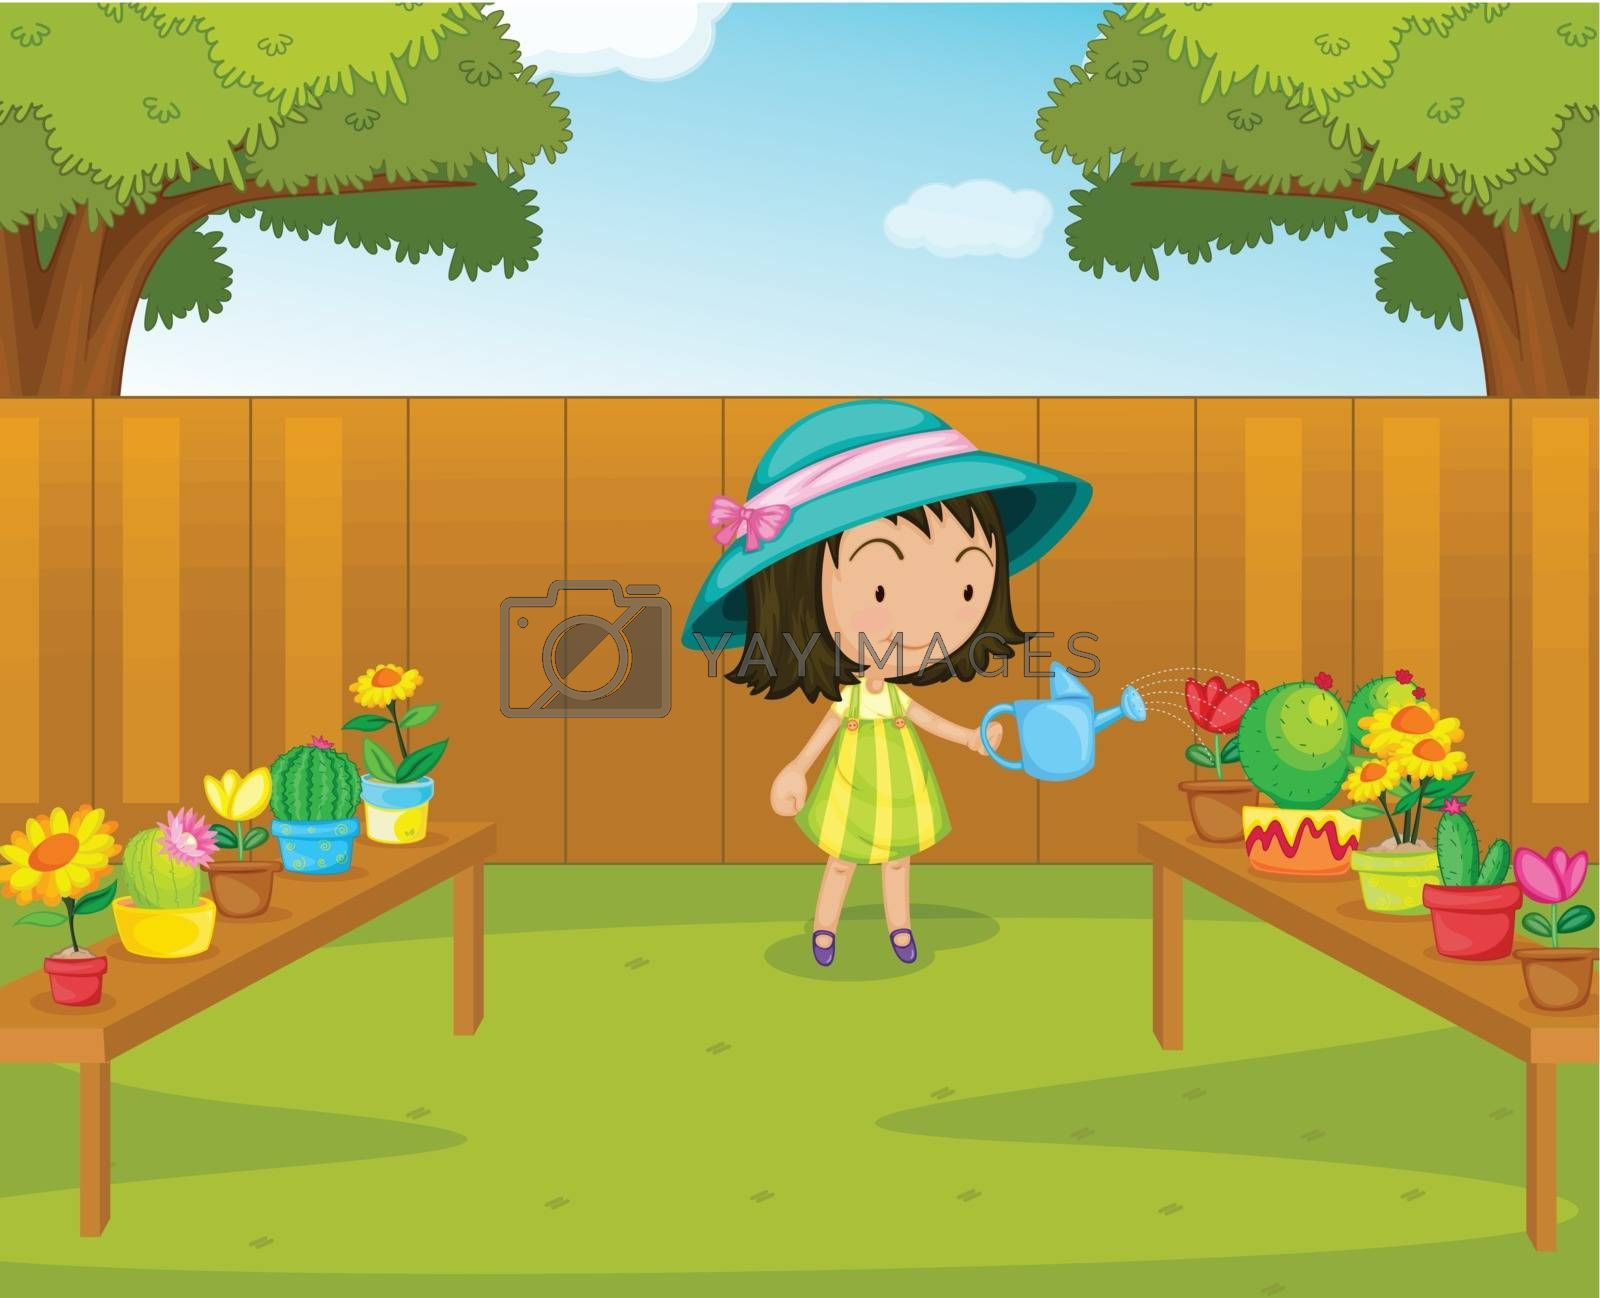 Illustration of a gril watering plants in the garden